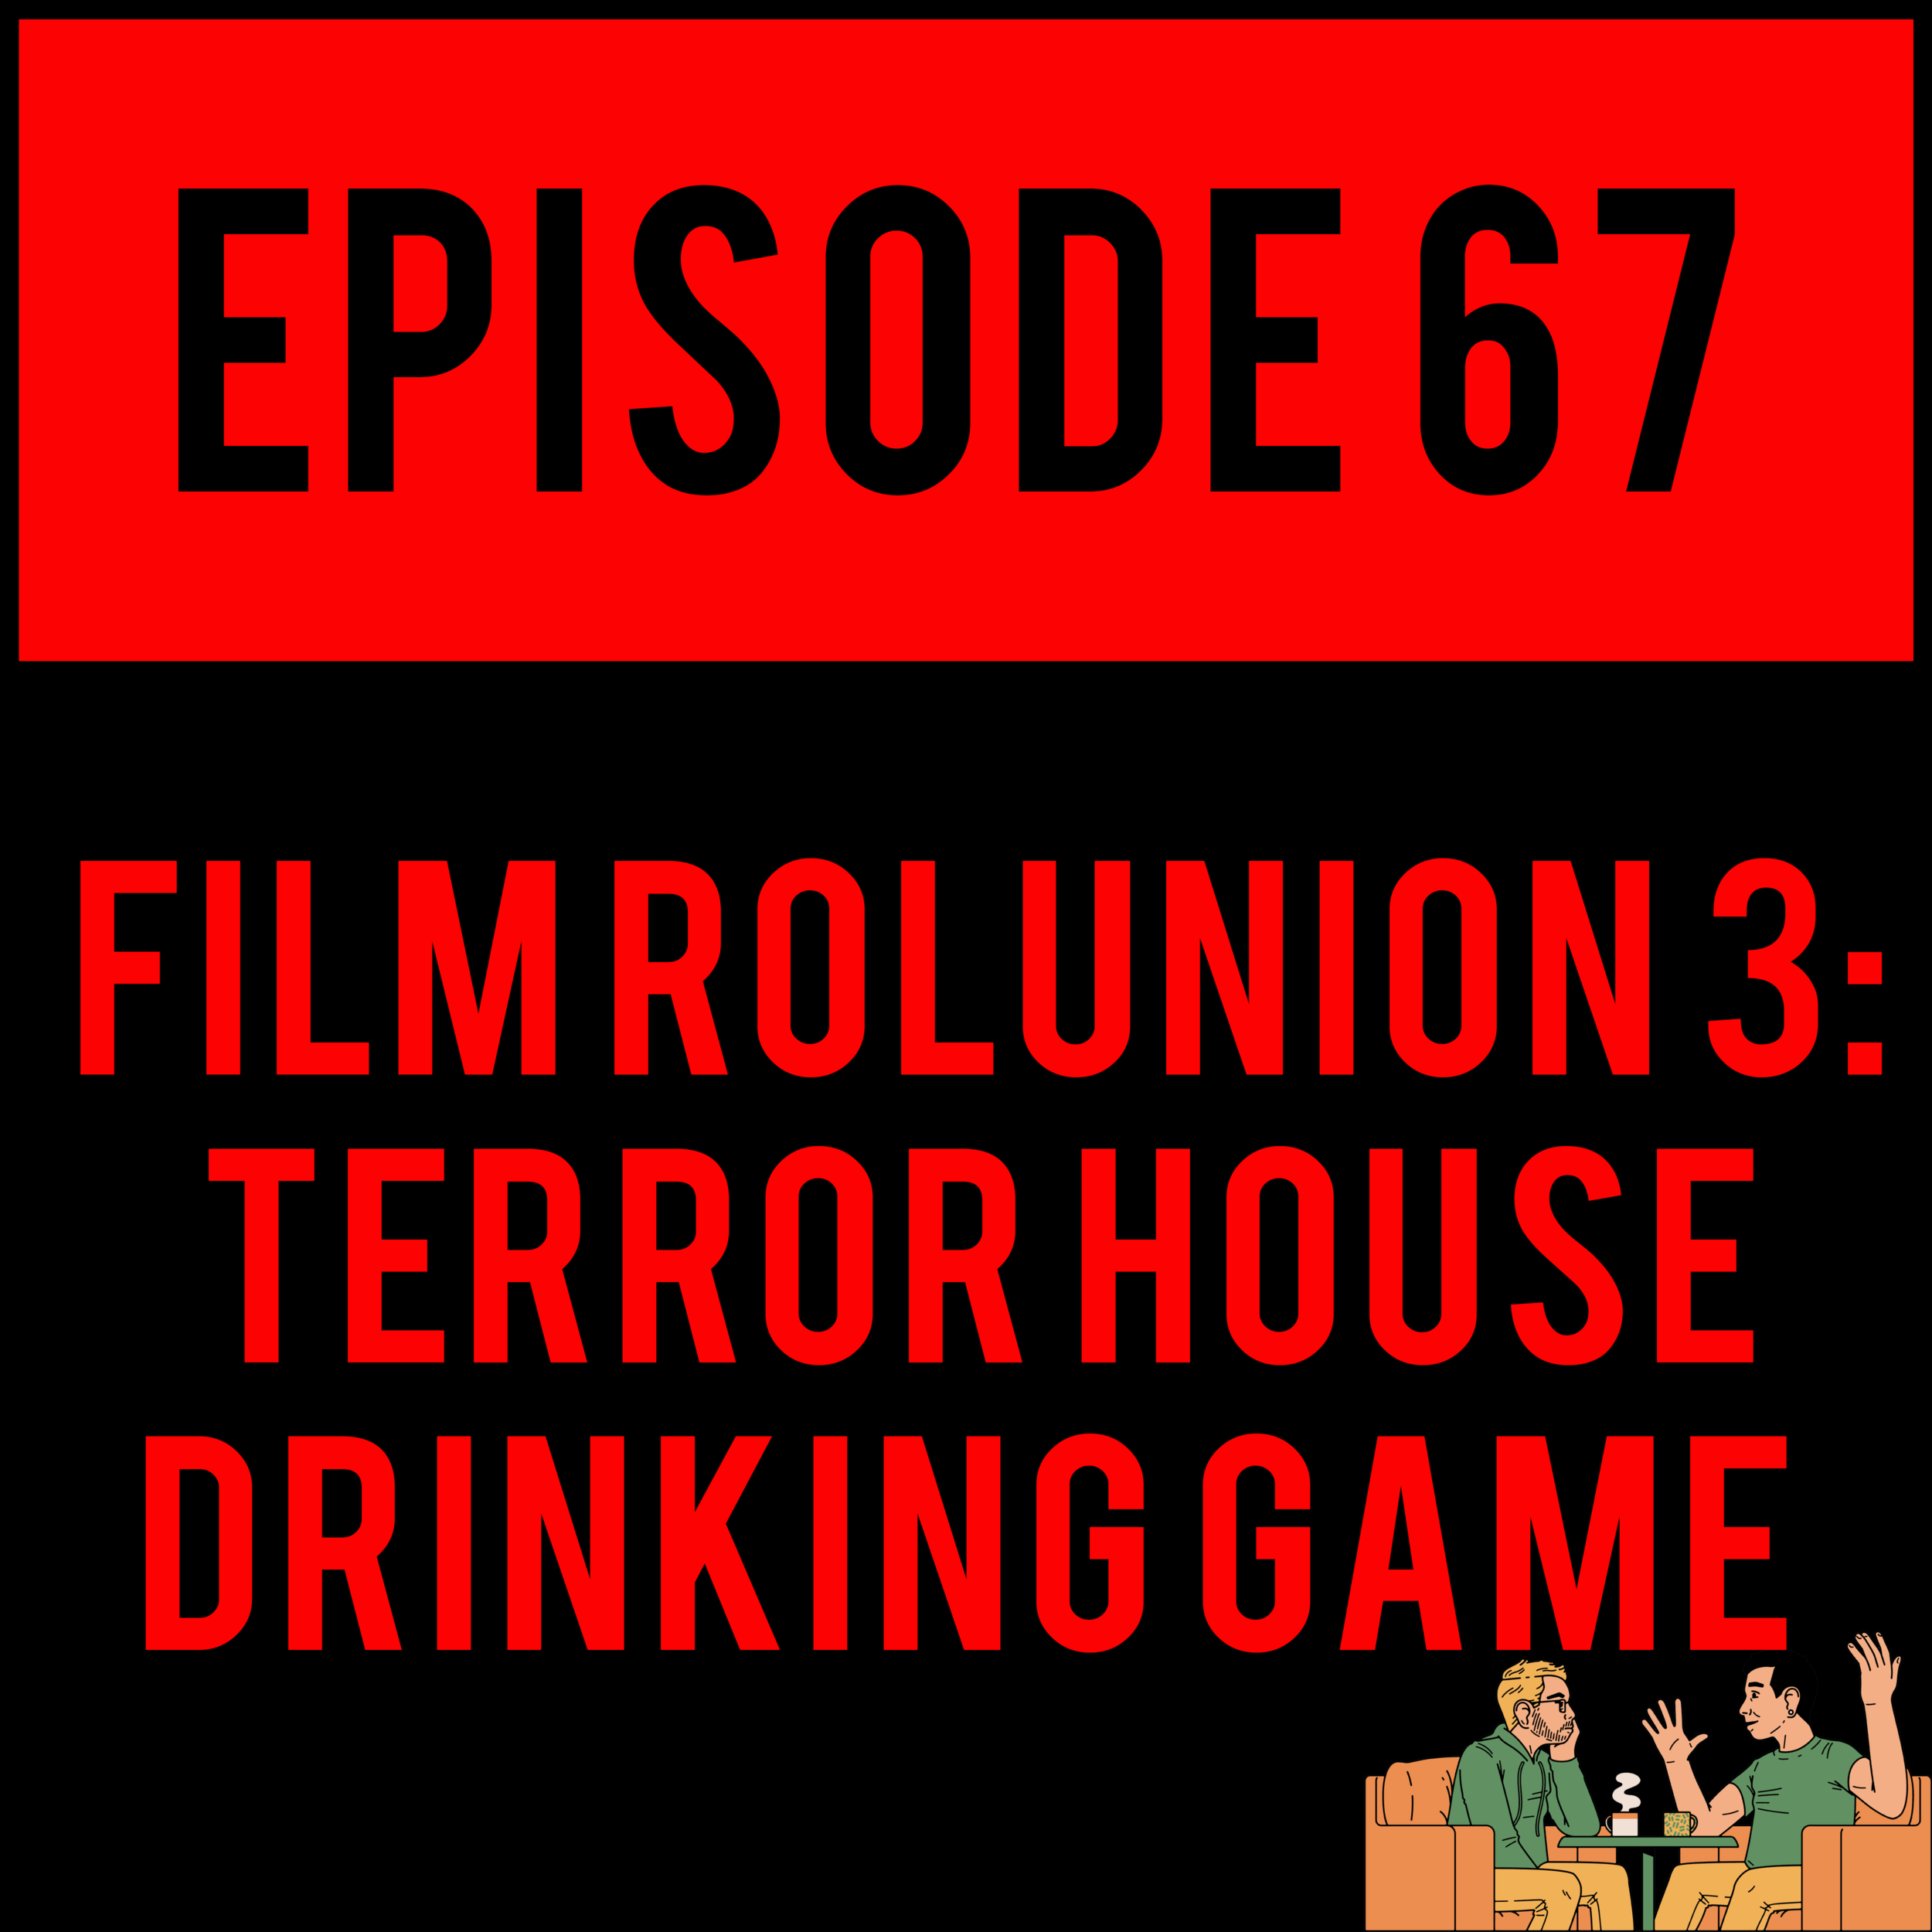 EPISODE 67 - Alex finally mixes his alcoholism with supplements, Robbie was sarcastically drunk, Bran was out of the country(?), Patrick was out of tampons (so he couldn't make the episode) and Justyn rigs up the most professional movie recording setup of 2019. Ya bois are back on FILM ROLUNION 3: TERROR HOUSE DRINKING GAME - EPISODE 67.